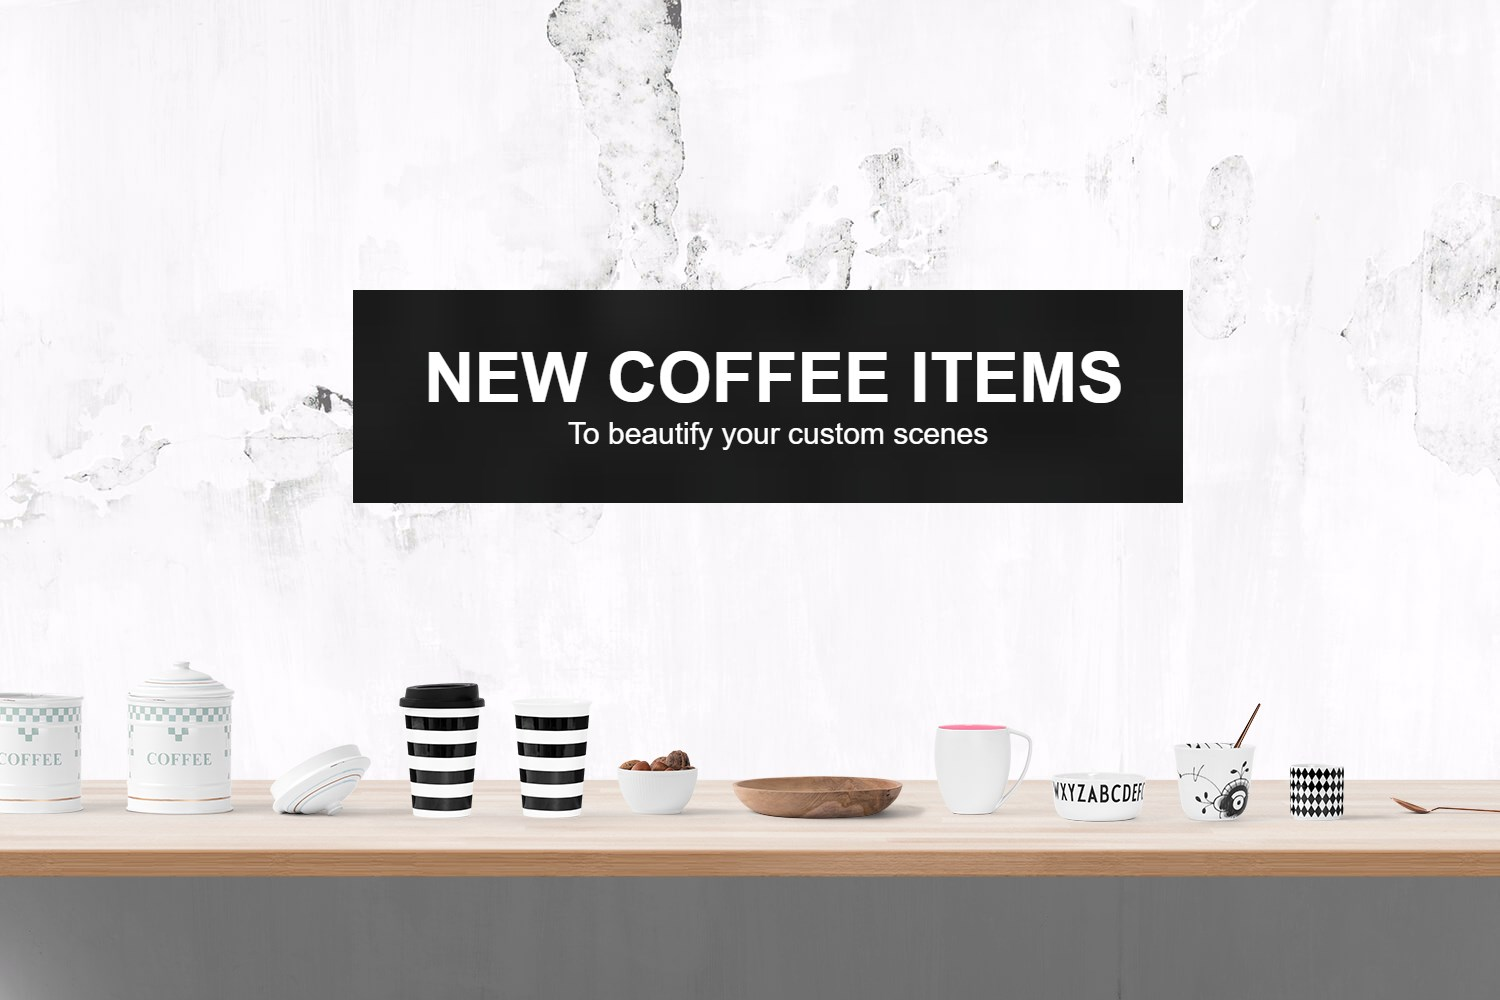 Mockupeditor.com - https://mockupeditor.com/editor/71Q-4di4902PJJAqOIsvFw/New-Coffee-items